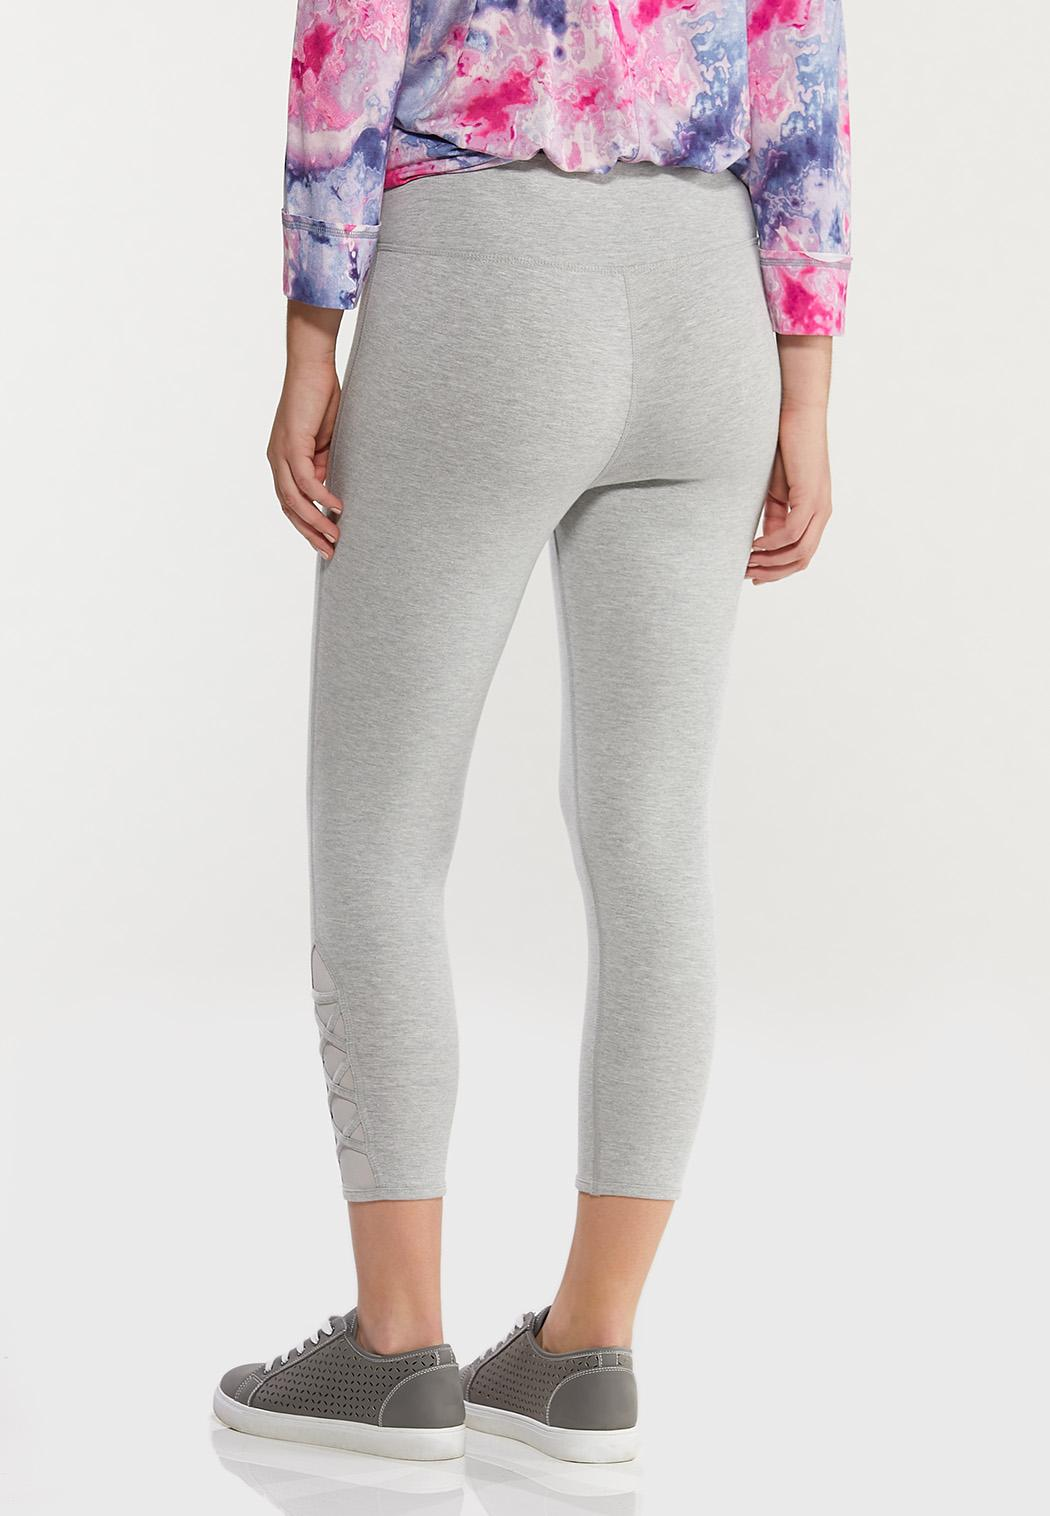 Cropped Criss Cross Leggings (Item #44477336)